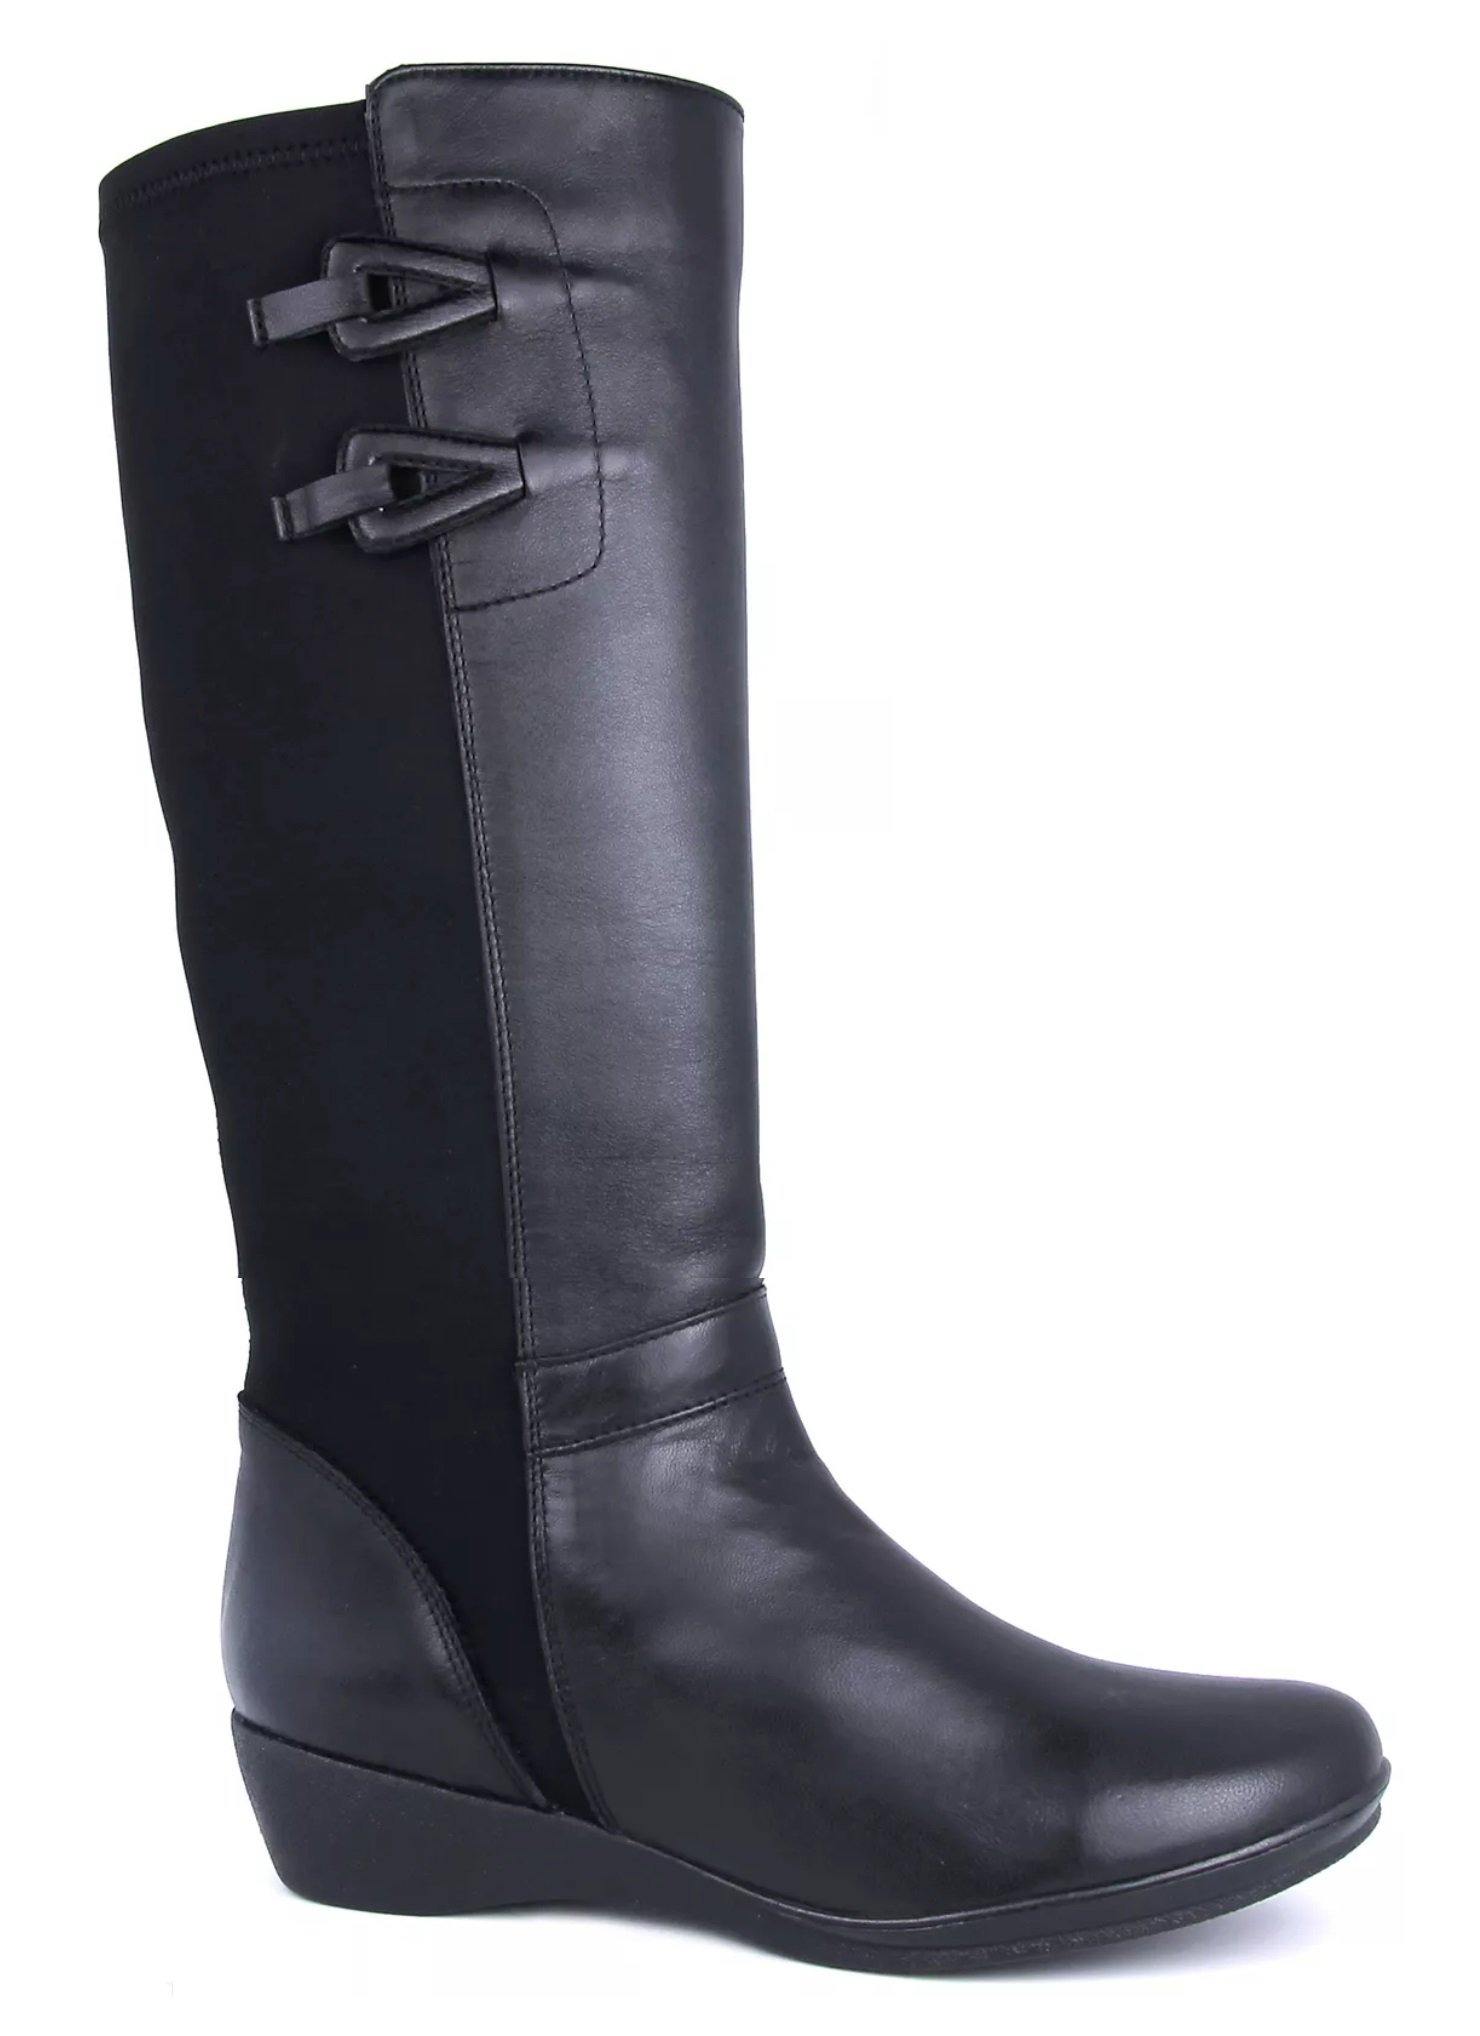 Women's Dr. Scholl's Black Smooth Calfskin & Elastic Tall Comfort Boot (8.5)